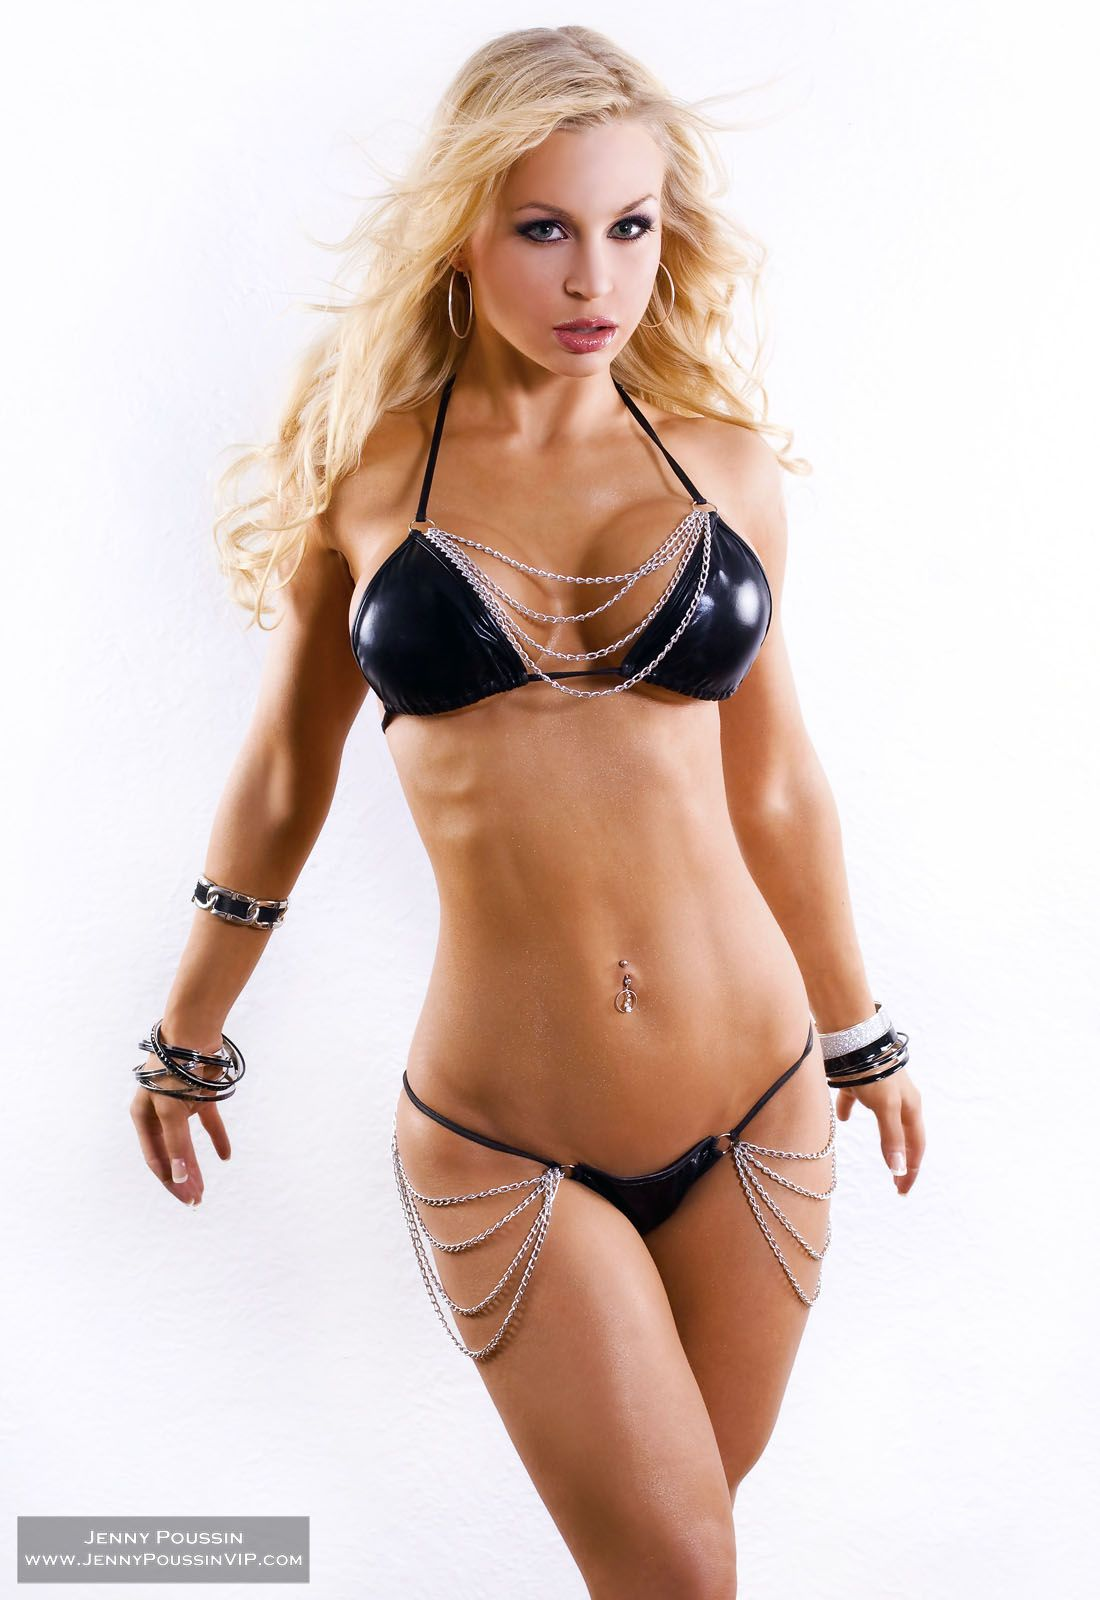 jenny poussin of her set black & white chain bikini | bikini